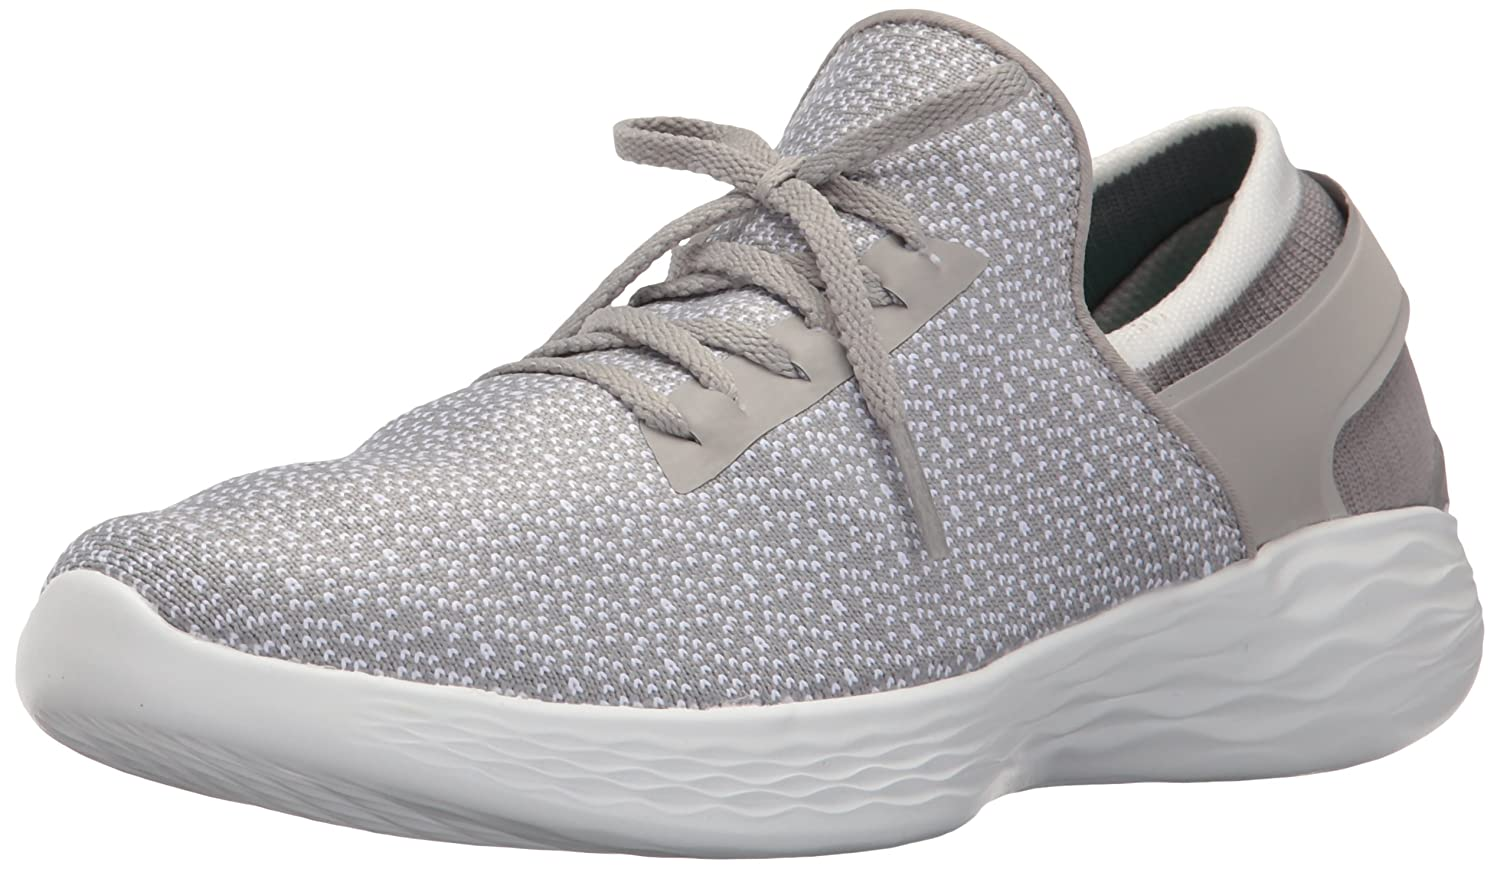 Skechers Women's You Inspire Slip-on Shoe B01N5PE6DP 6 B(M) US|Gray